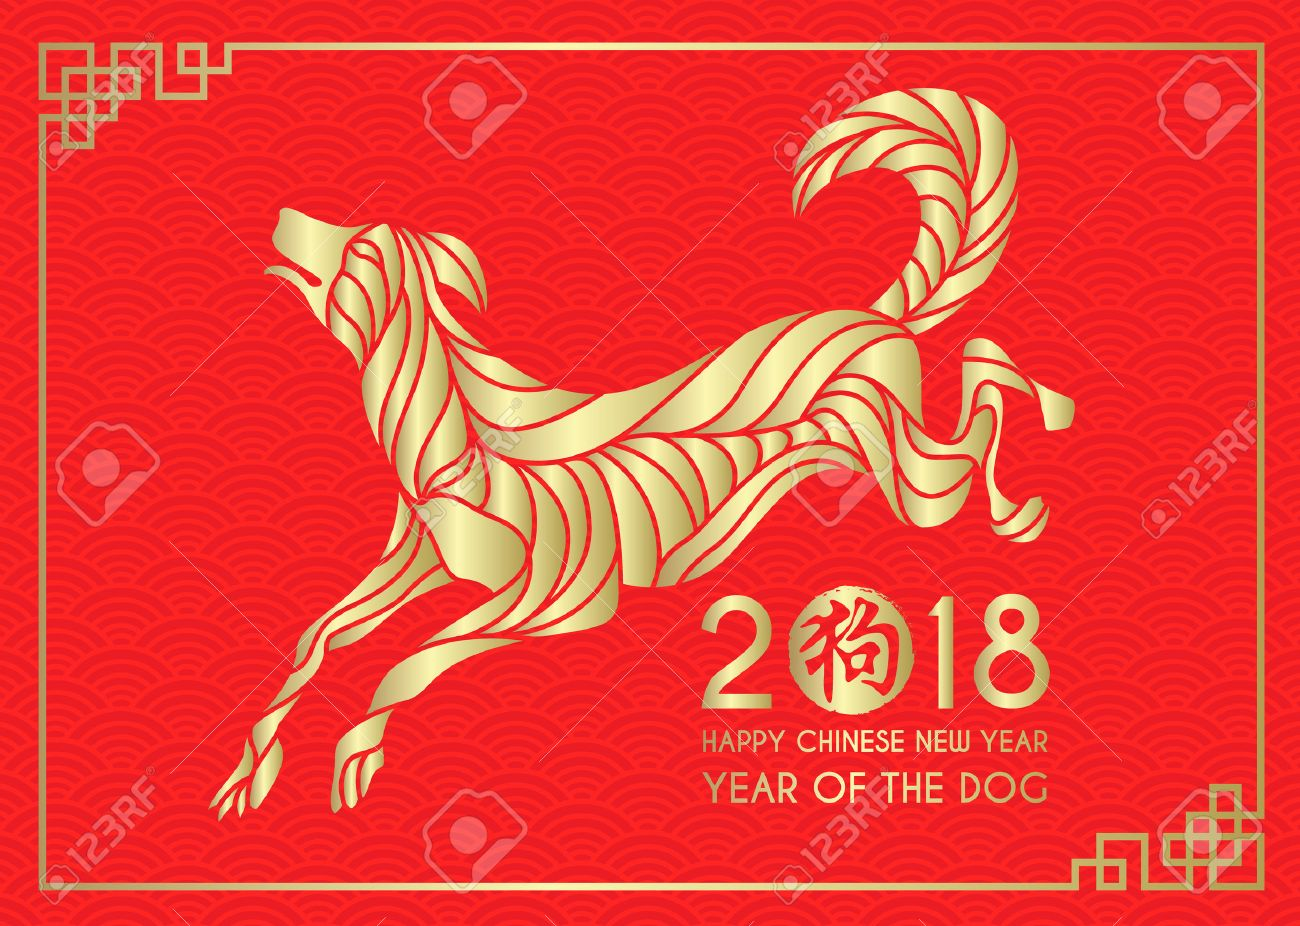 happy chinese new year 2018 card with gold dog abstract on red background vector design - Happy Chinese New Year In Chinese